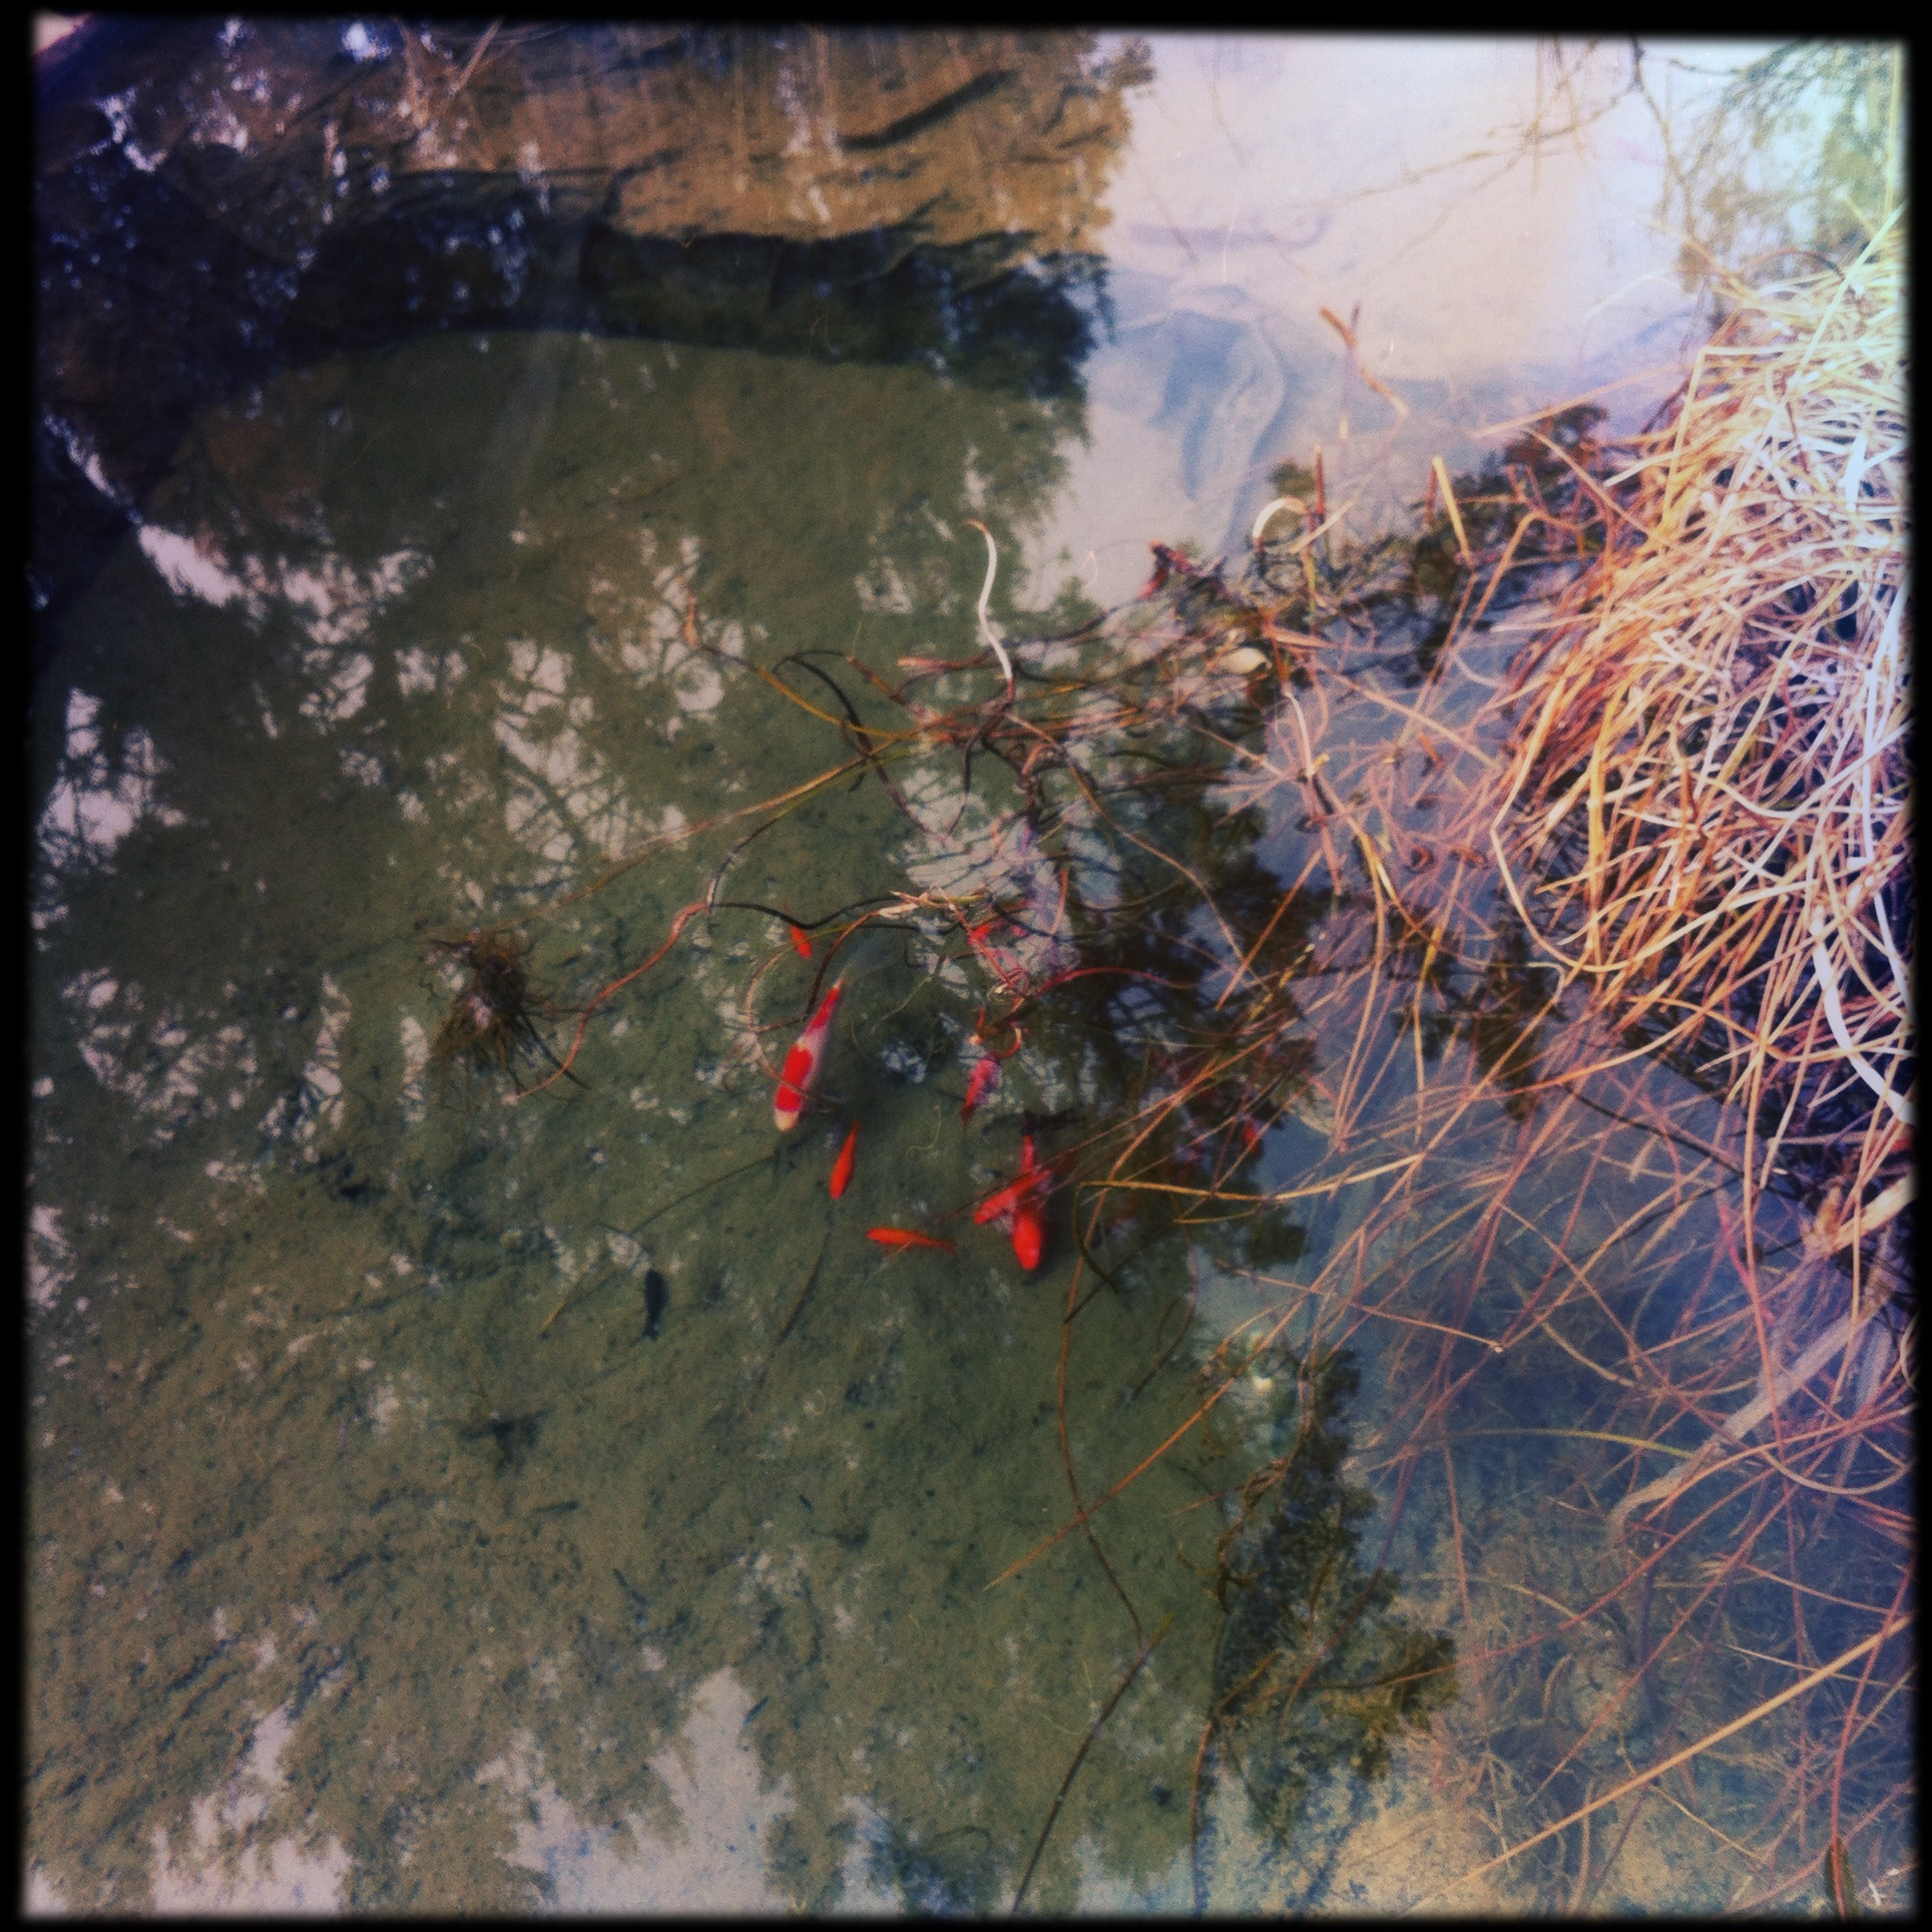 Suddenly this week the pond has thawed, revealing goldfish still thriving underneath. Amy the Fish still lives! She and her three surviving cohorts are at least four, maybe five years old, and have filled the pond with their progeny.